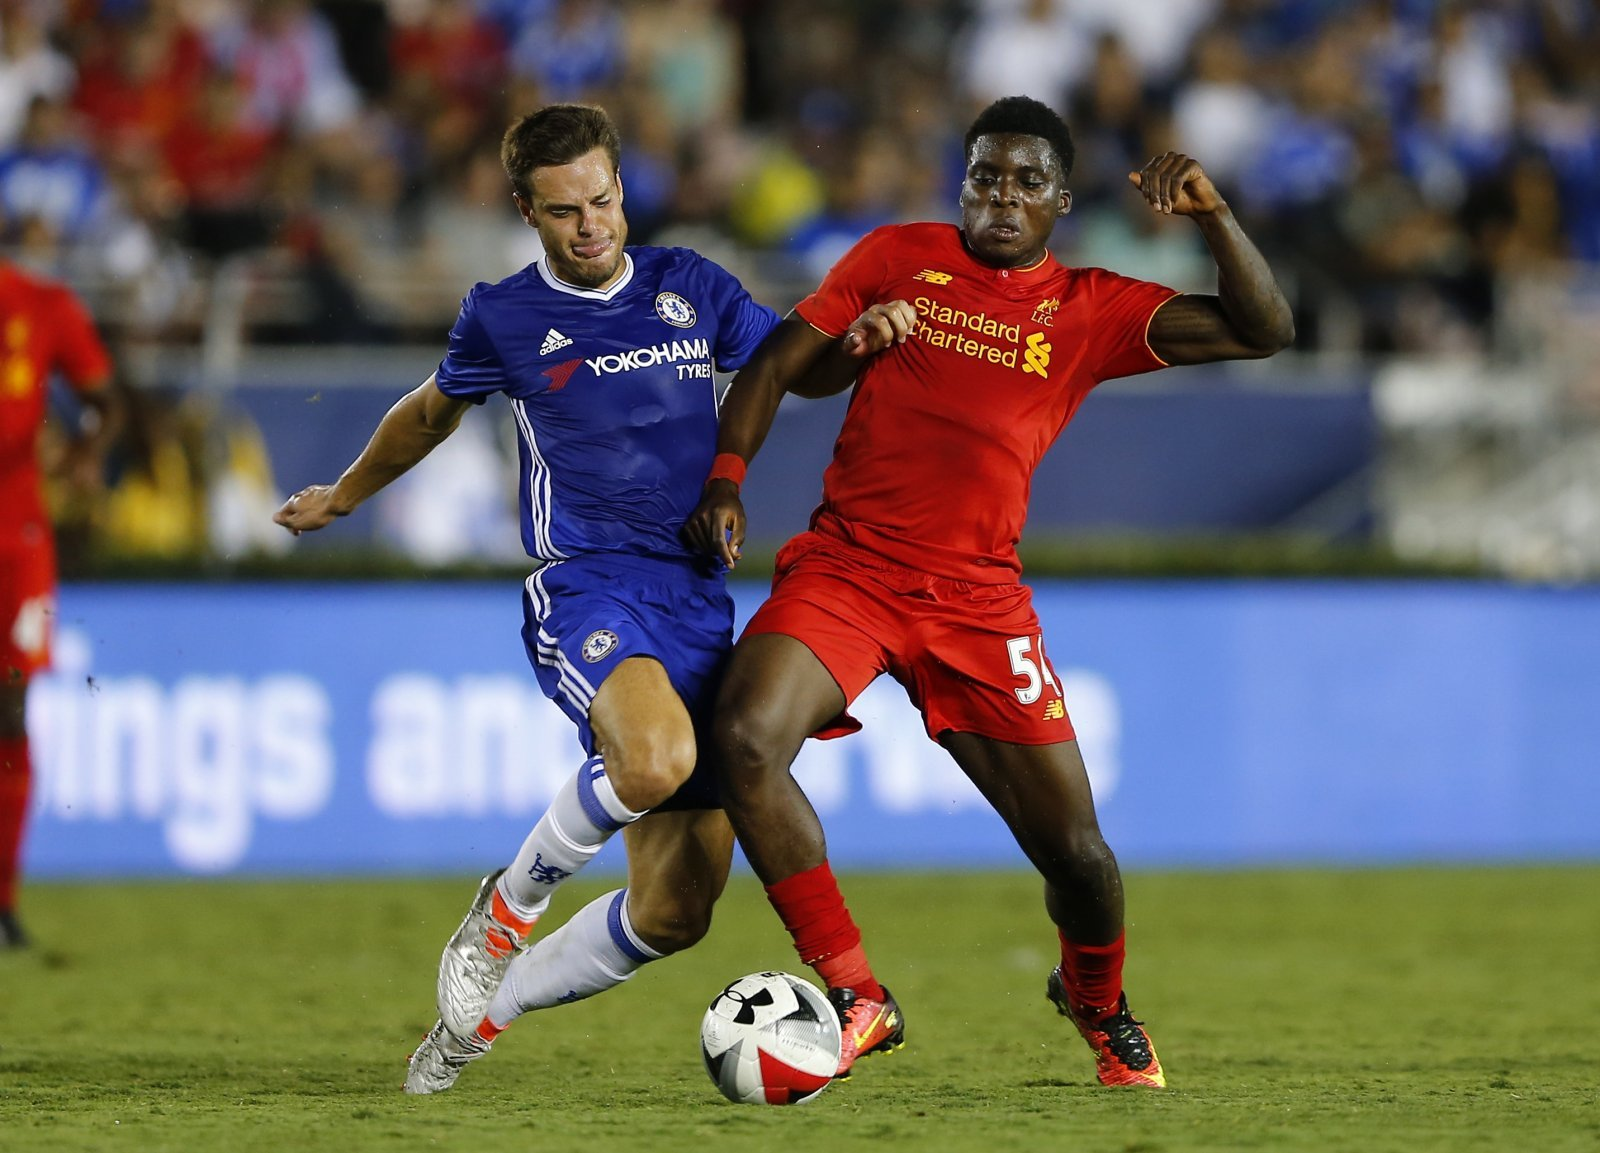 Middlesbrough in talks with Liverpool over £10 million deal for Sheyi Ojo